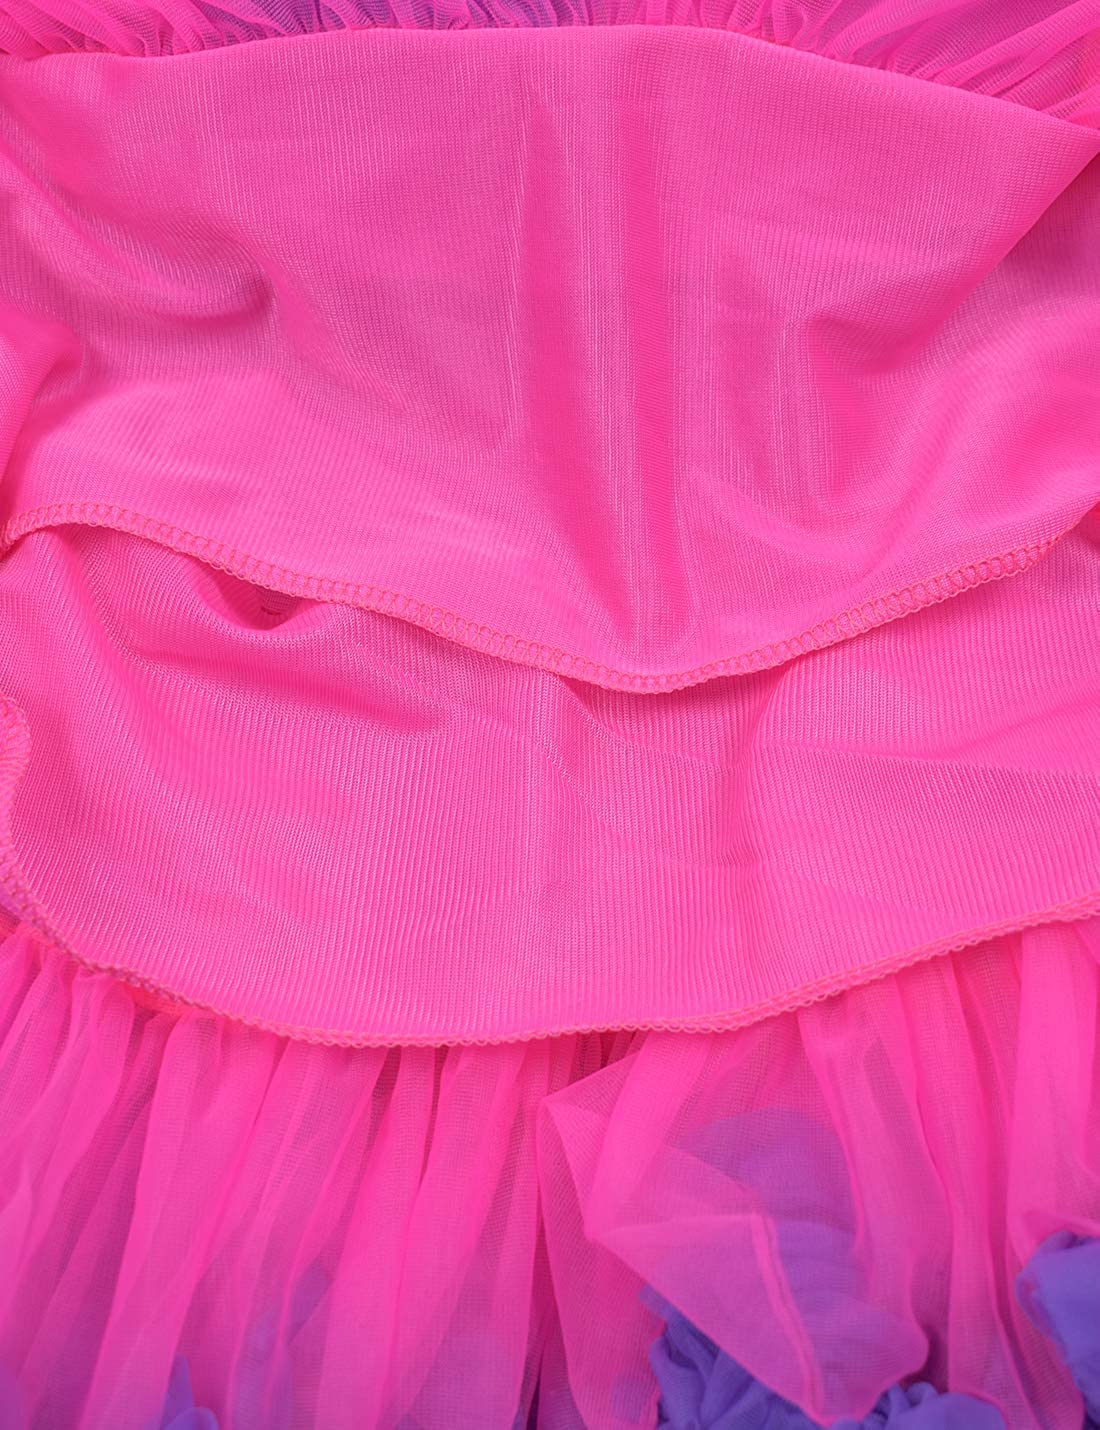 Baby Girls Fluffy Tutu Skirt Toddler Tulle Birthday Party Tiered ...